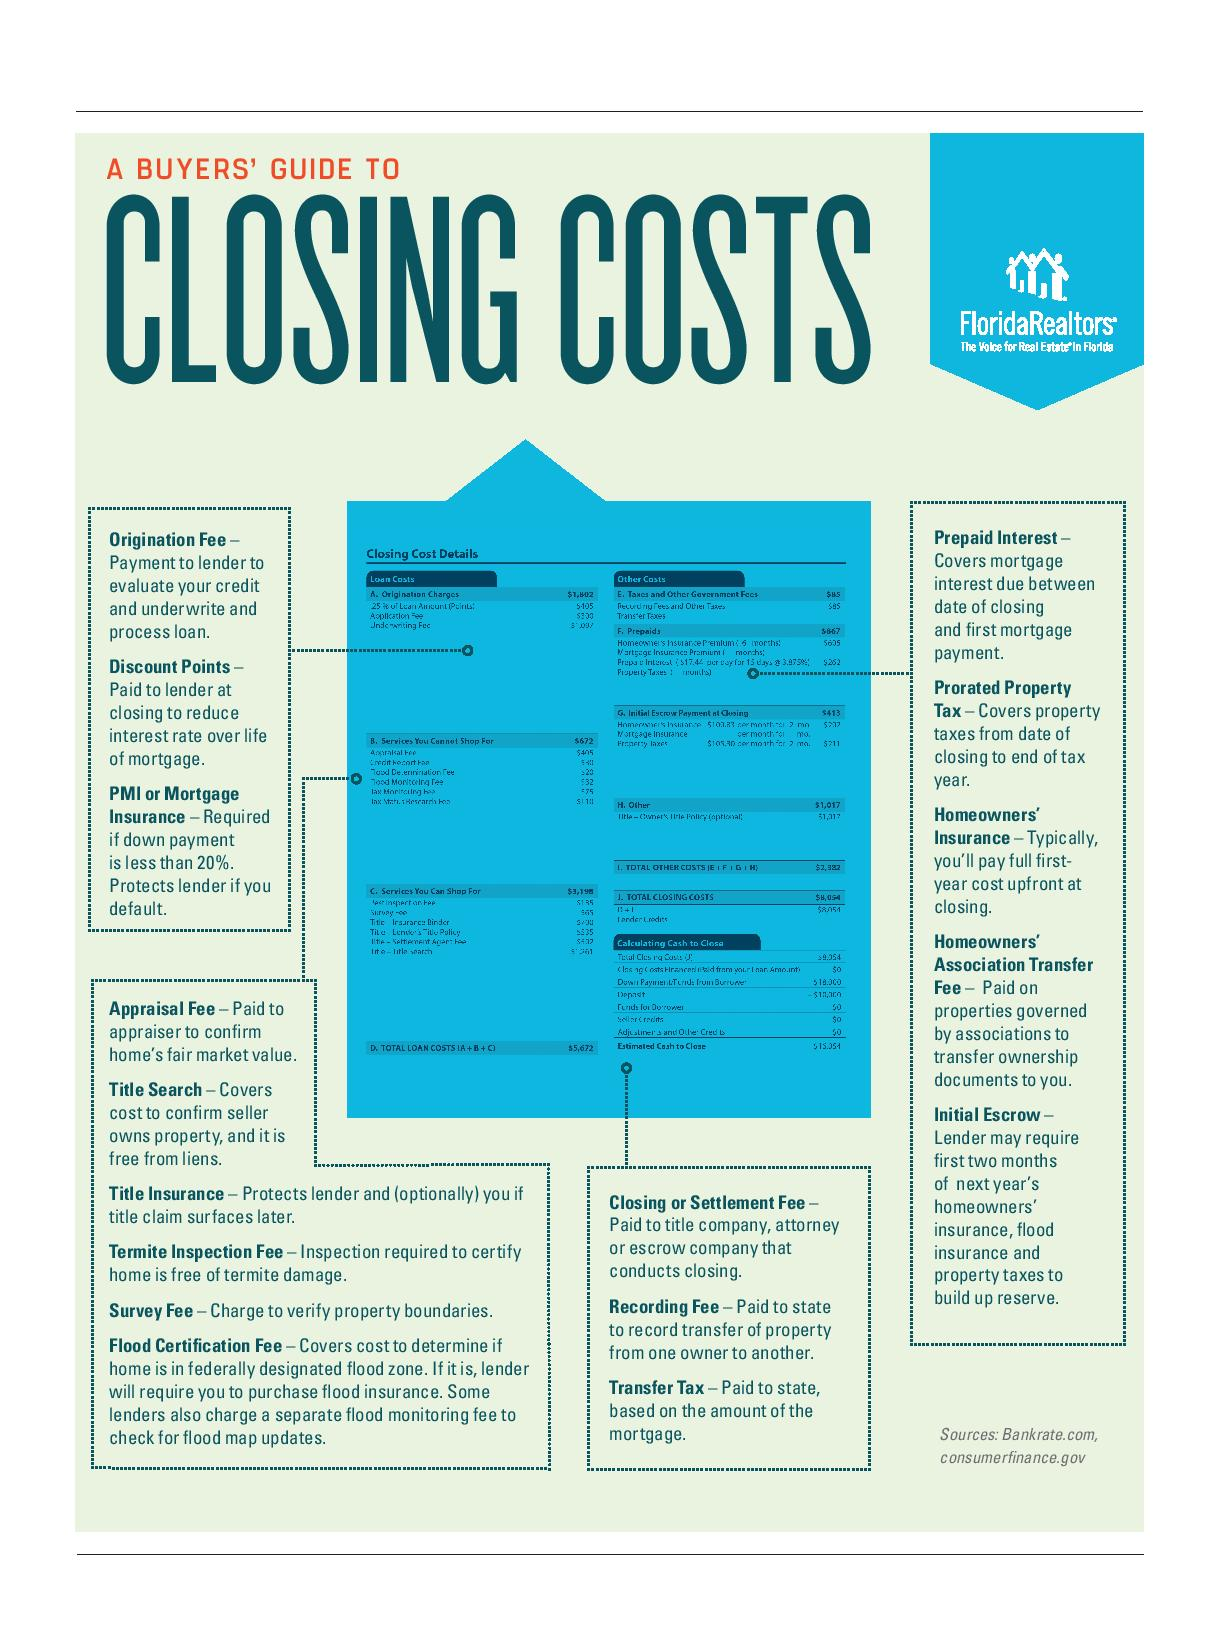 Buyer's Guide to Closing Cost